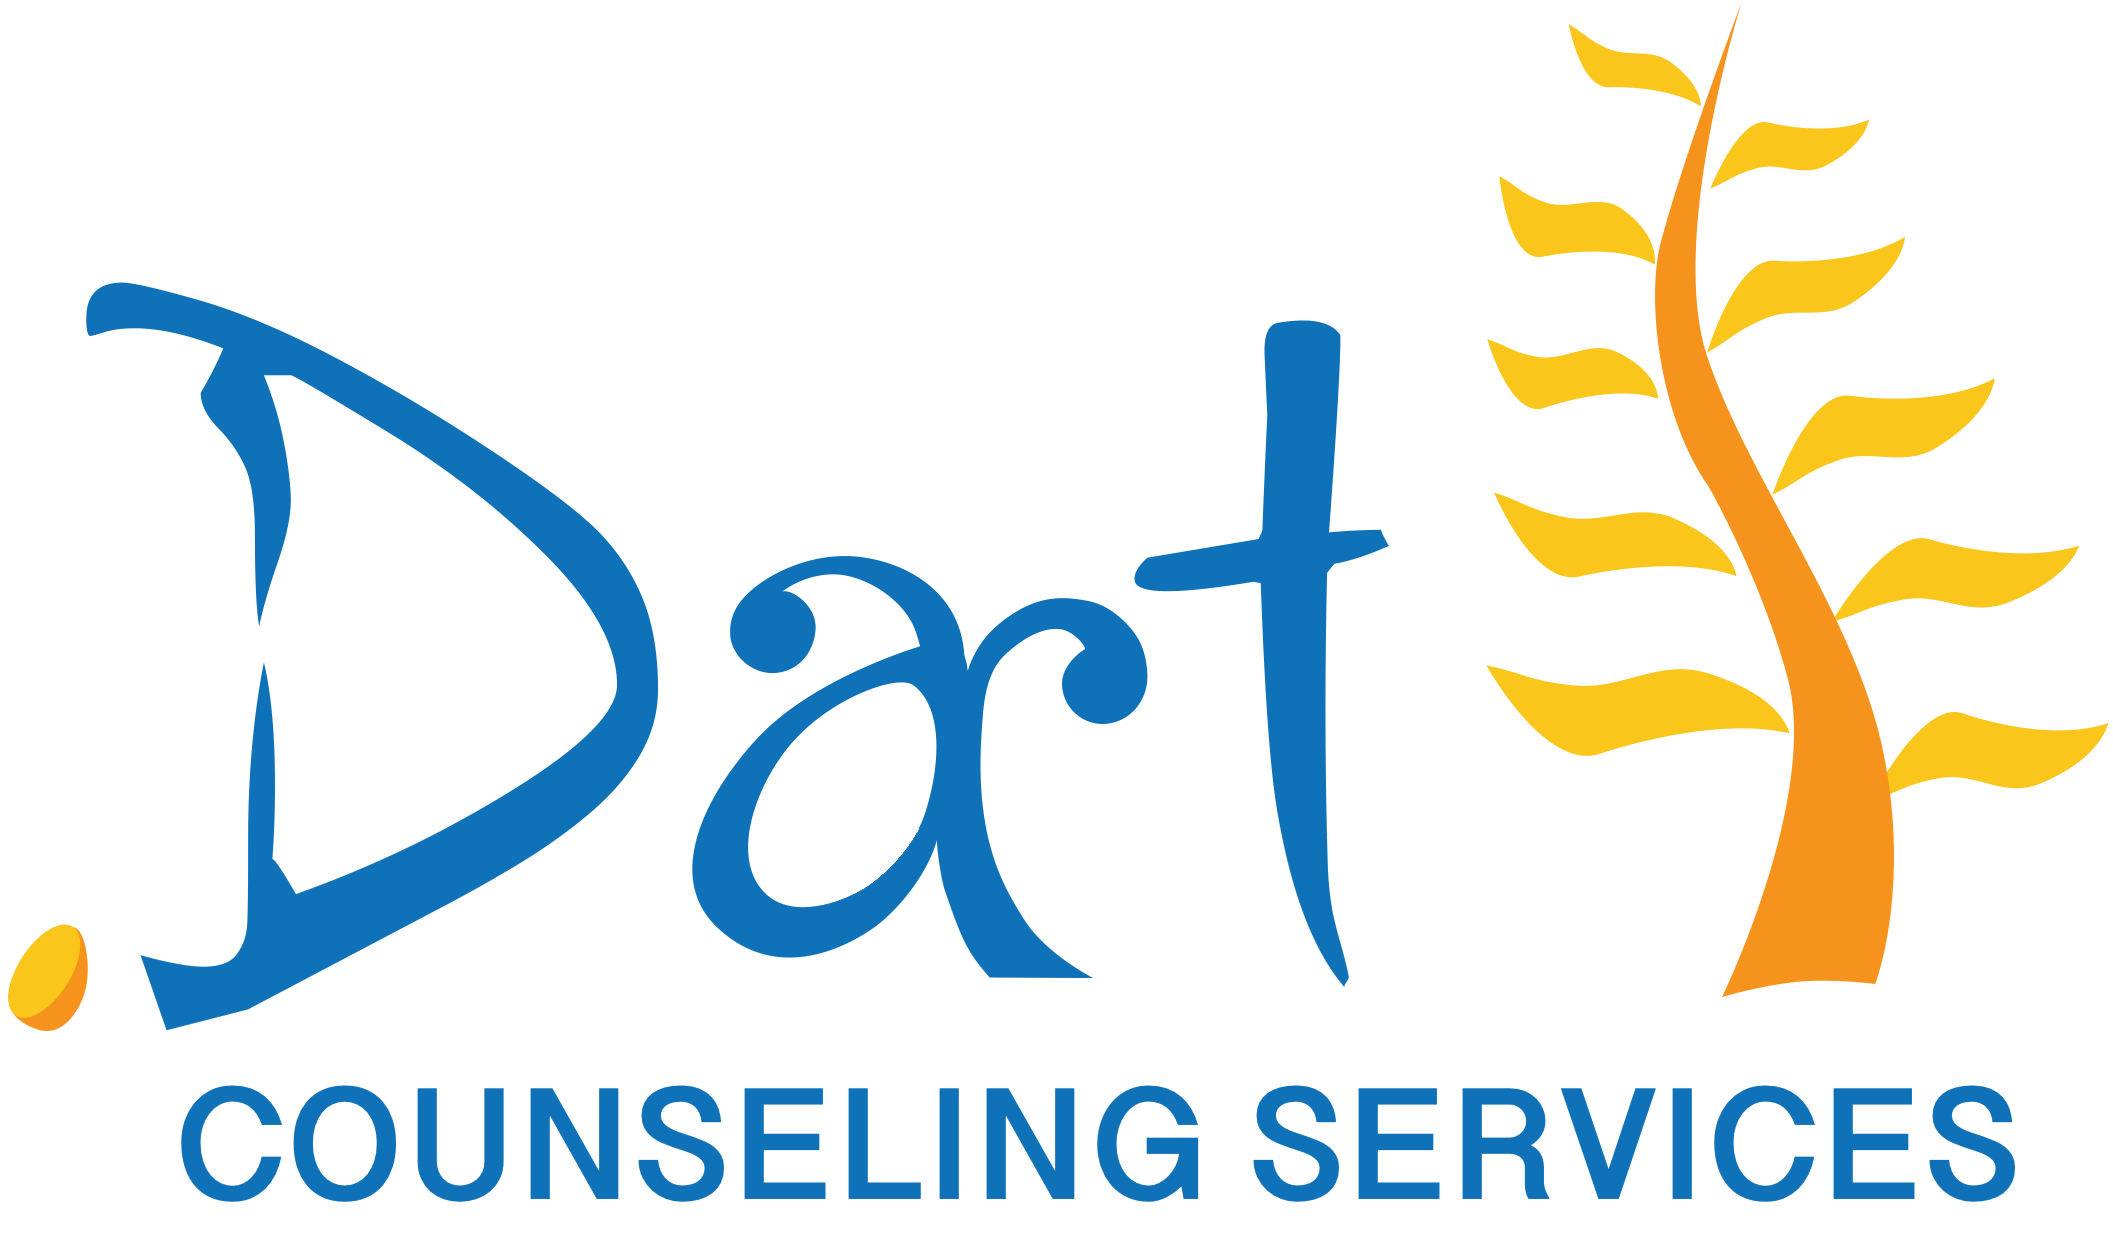 Dart Counseling Services